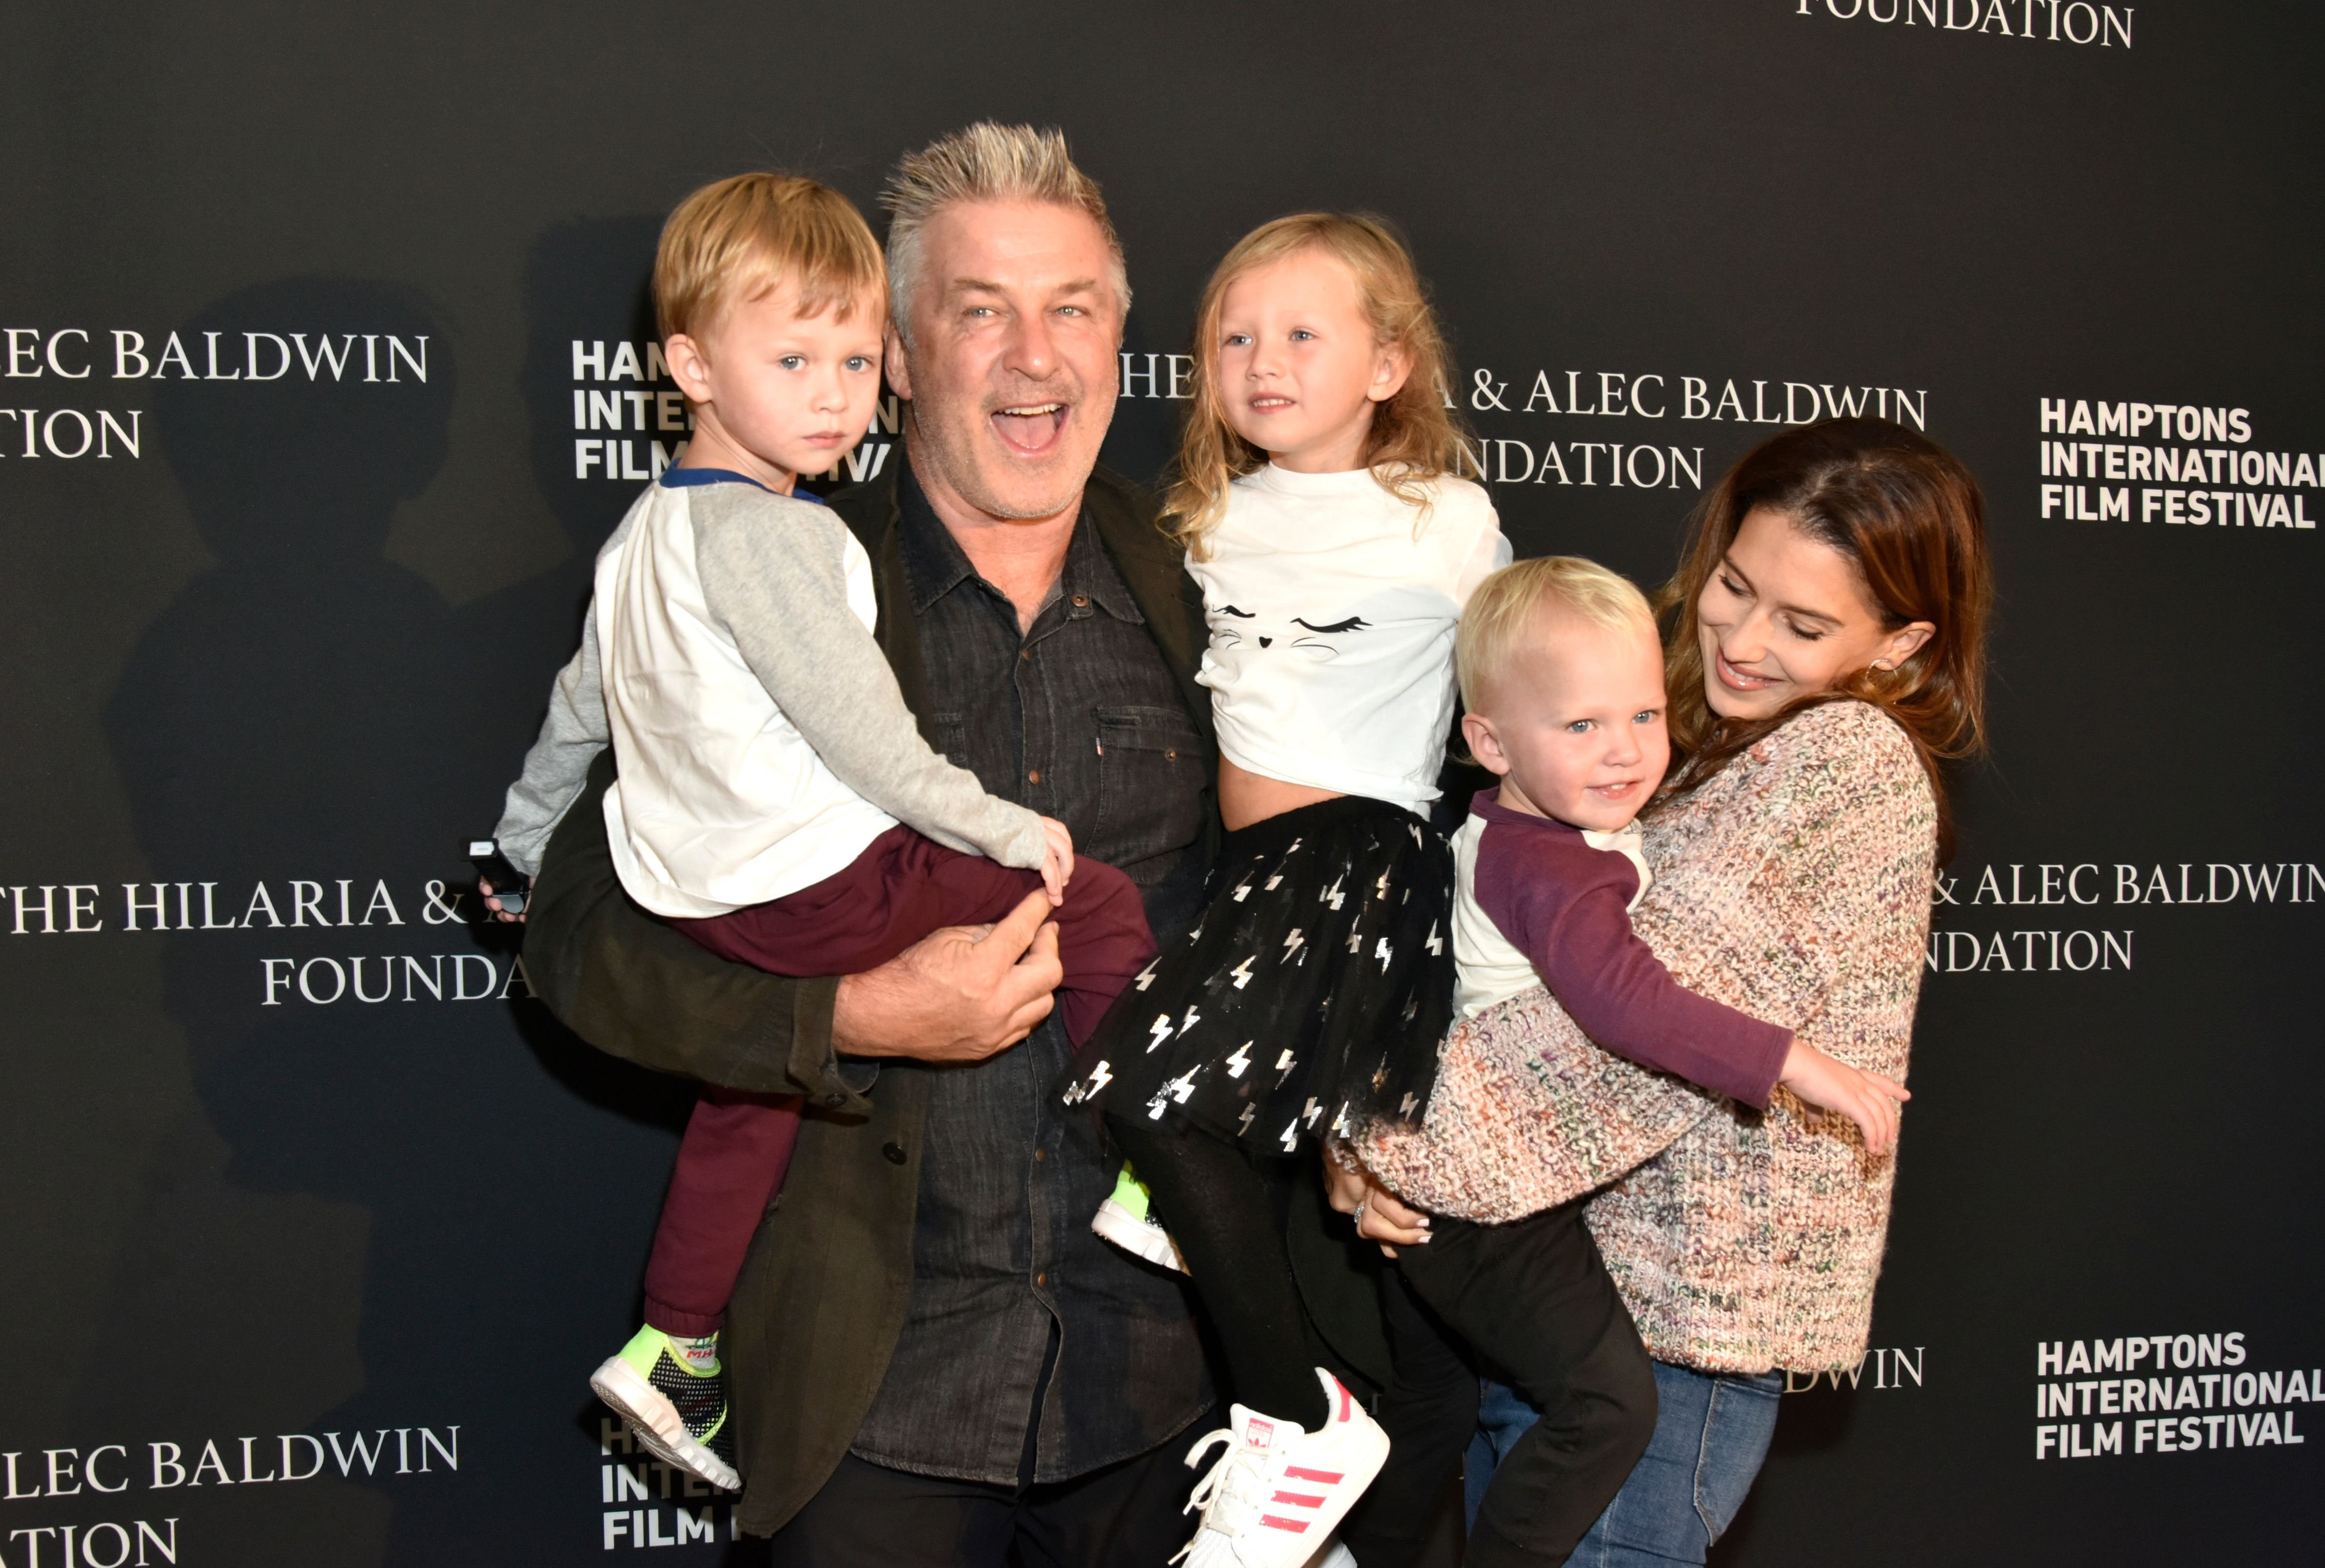 Alec Baldwin (2nd L)Hailaria Baldwin (R) and their children attend the red carpet and Chairman's Reception at Suna Residence during Hamptons International Film Festival 2018 - Day Three on October 6, 2018 in East Hampton, New York. | Source: Getty Images